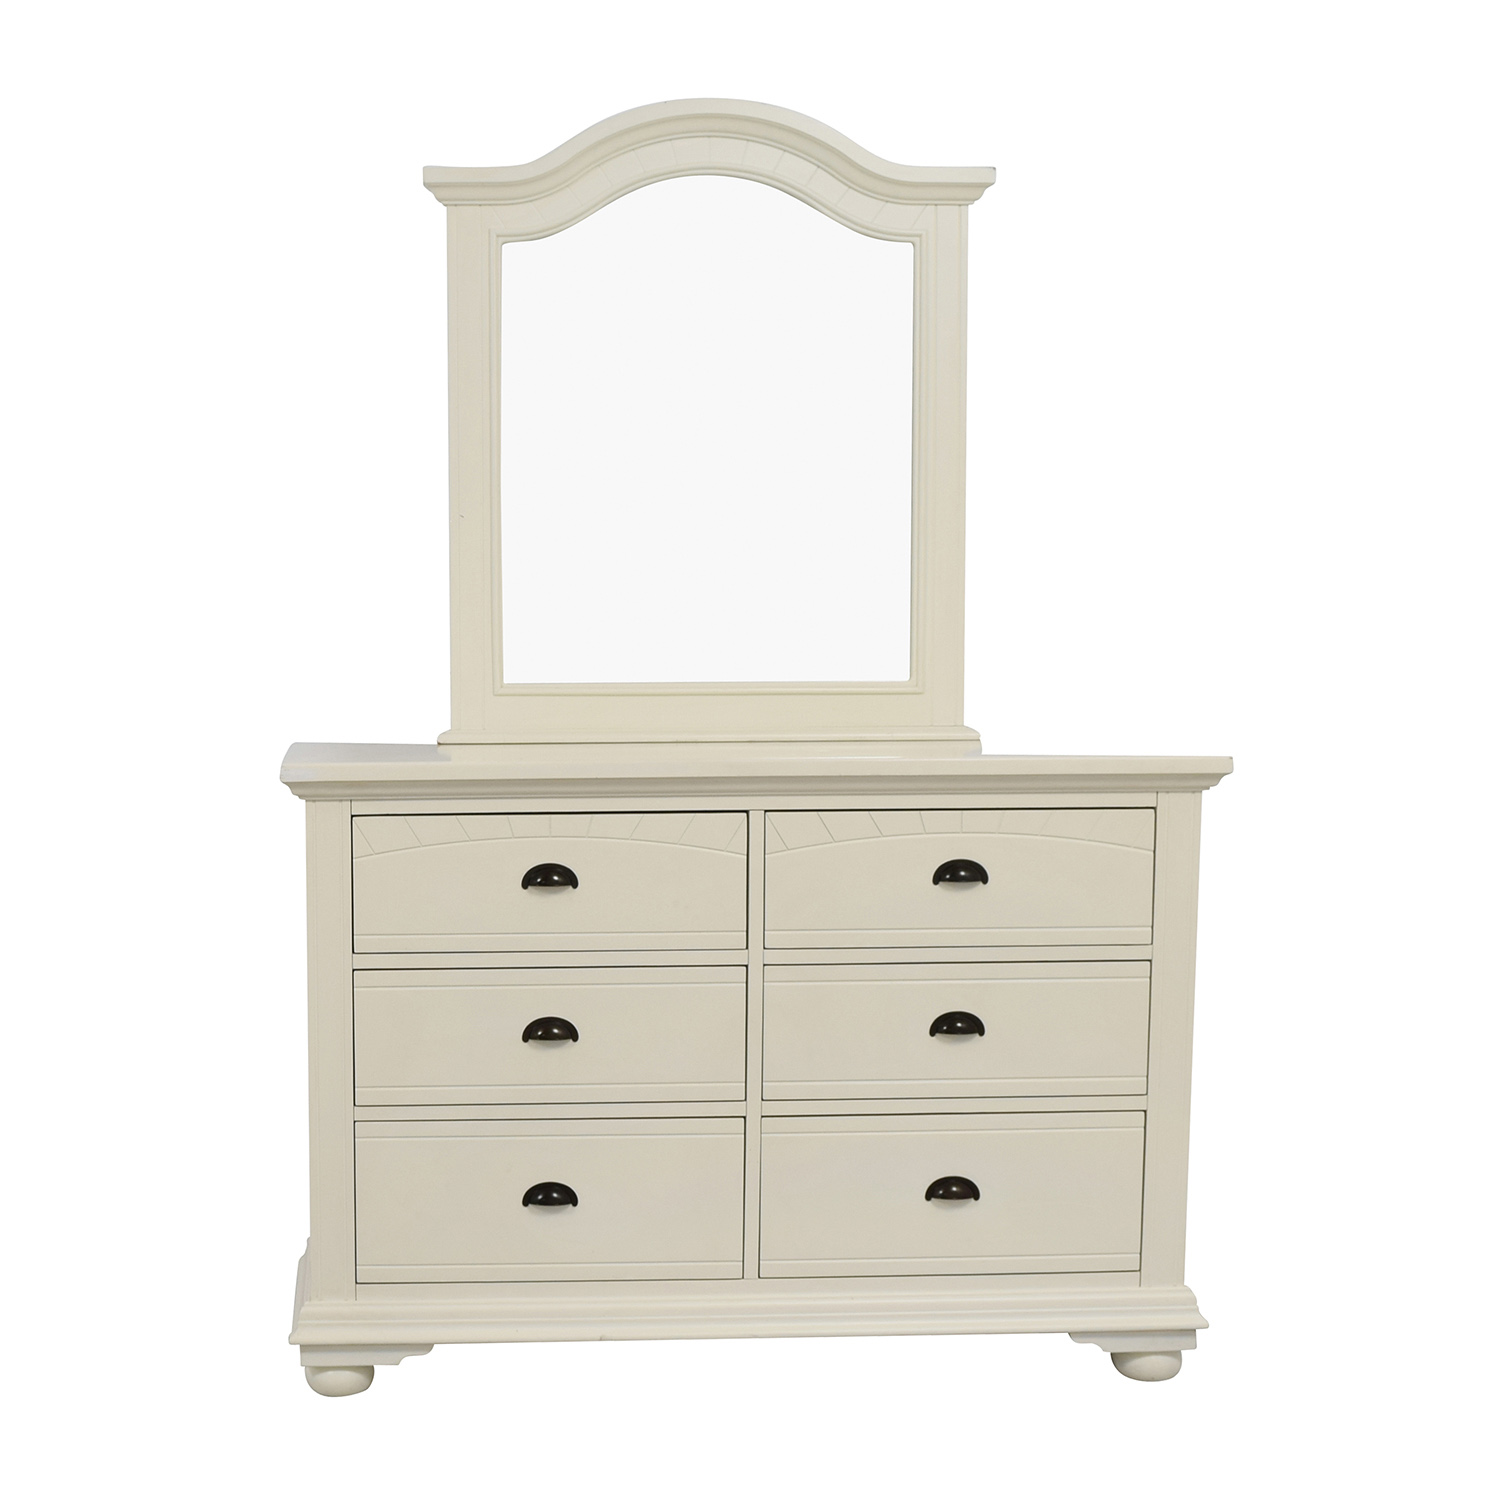 Awesome Bobs Furniture Bobs Furniture White Dresser With Mirror Dressers ...